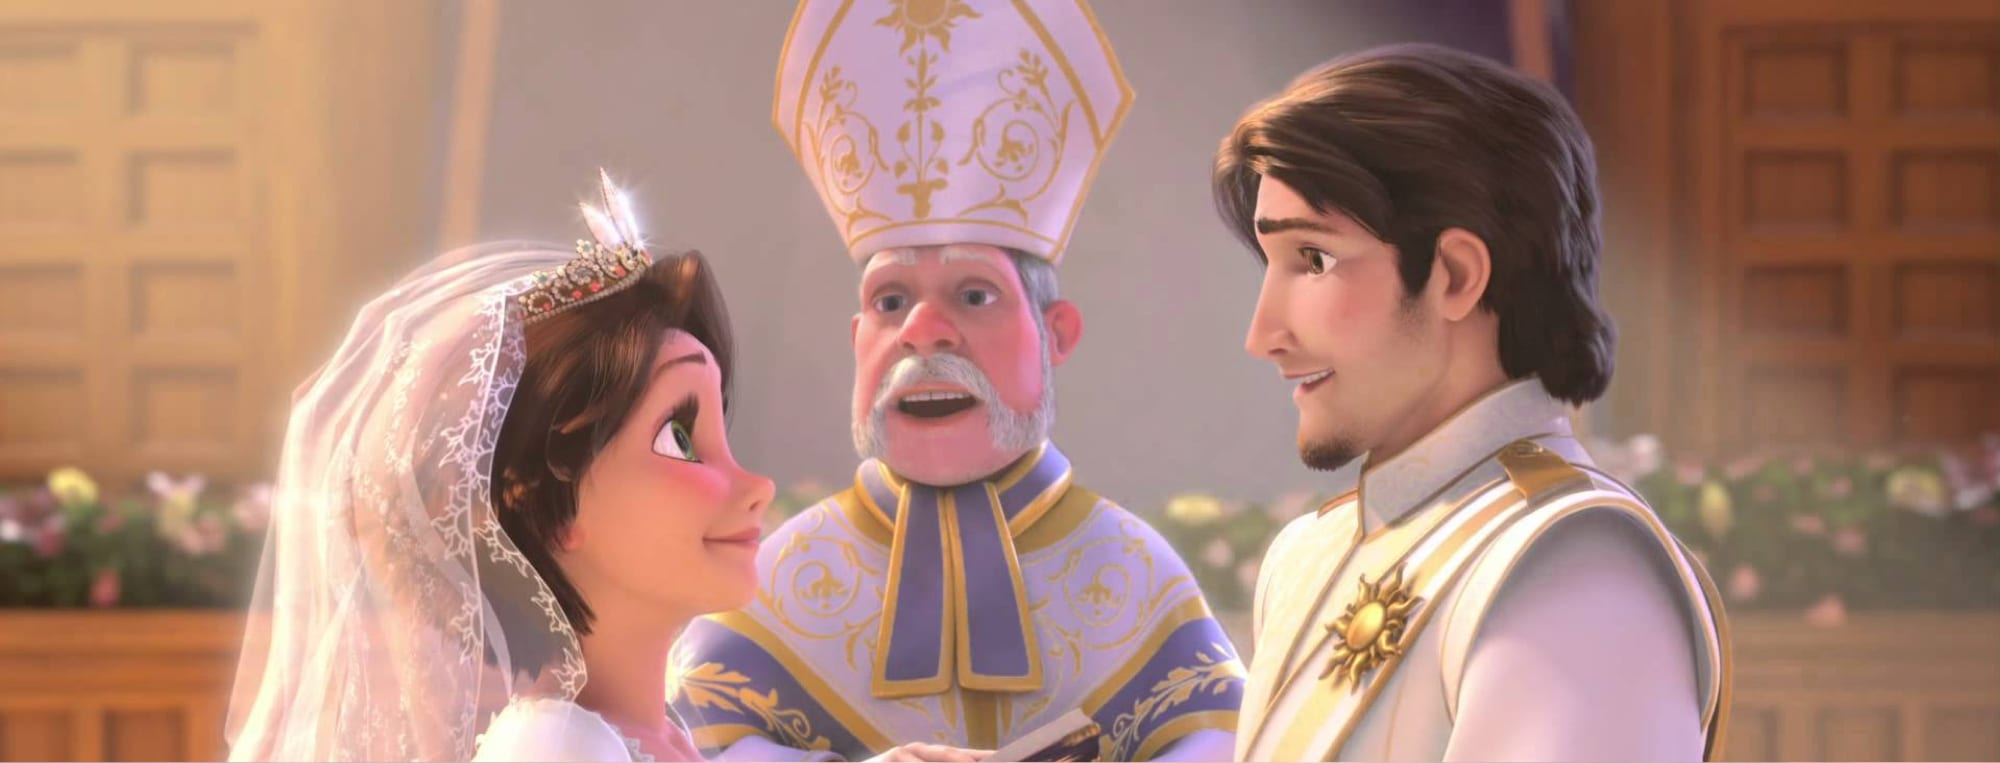 8 Most Romantic Disney Weddings